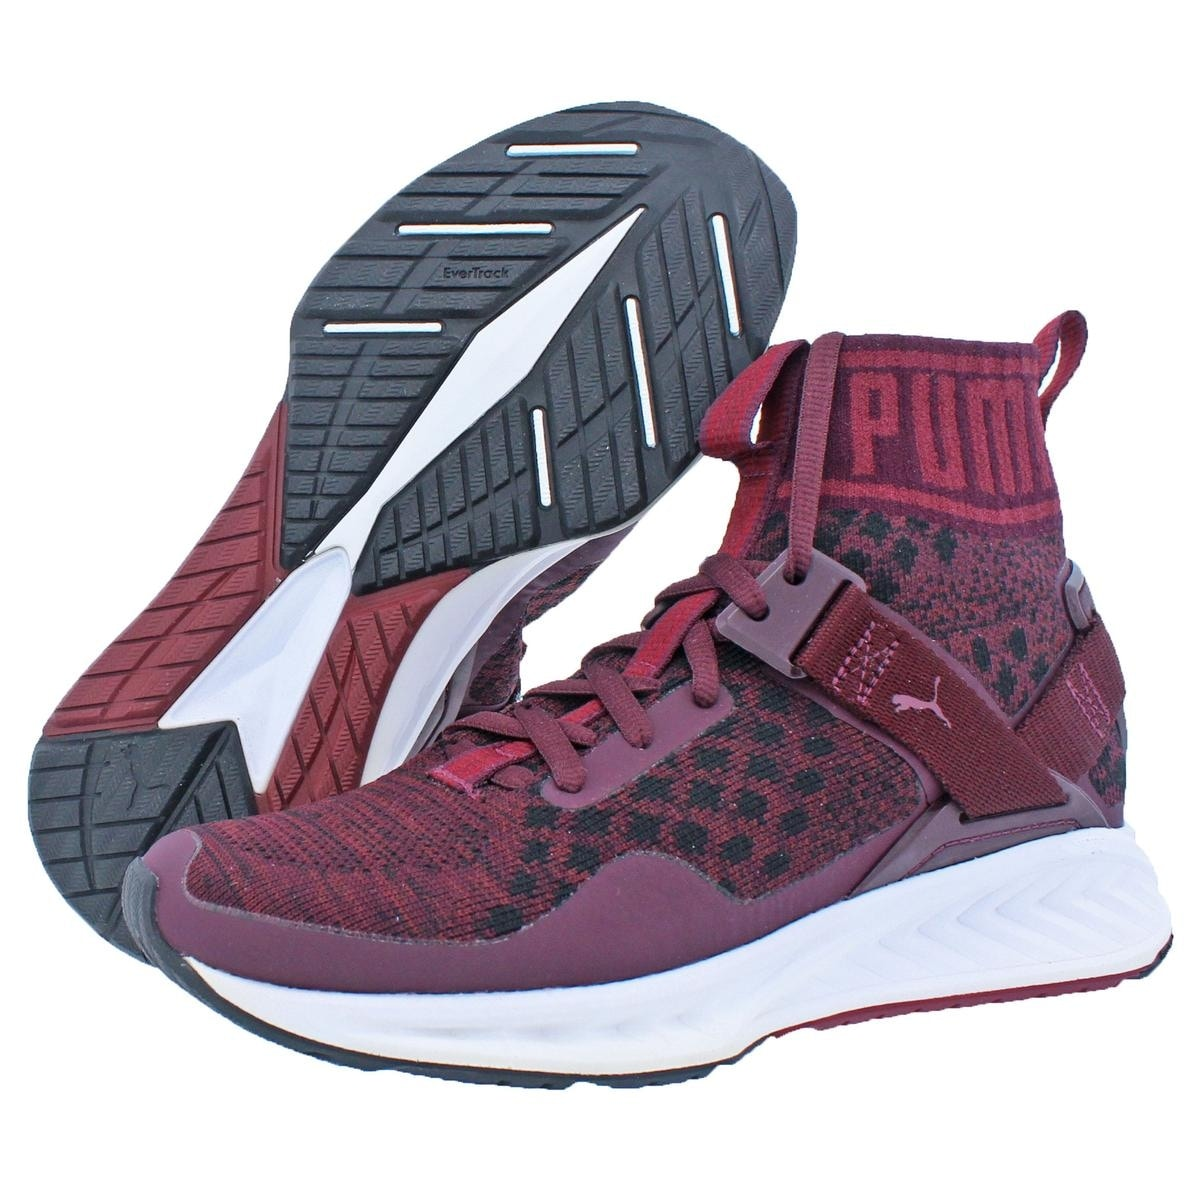 d5185965d3e9 Shop Puma Womens IGNITE evoKNIT Trainers High Top Evertrack - Free Shipping  Today - Overstock - 21942730